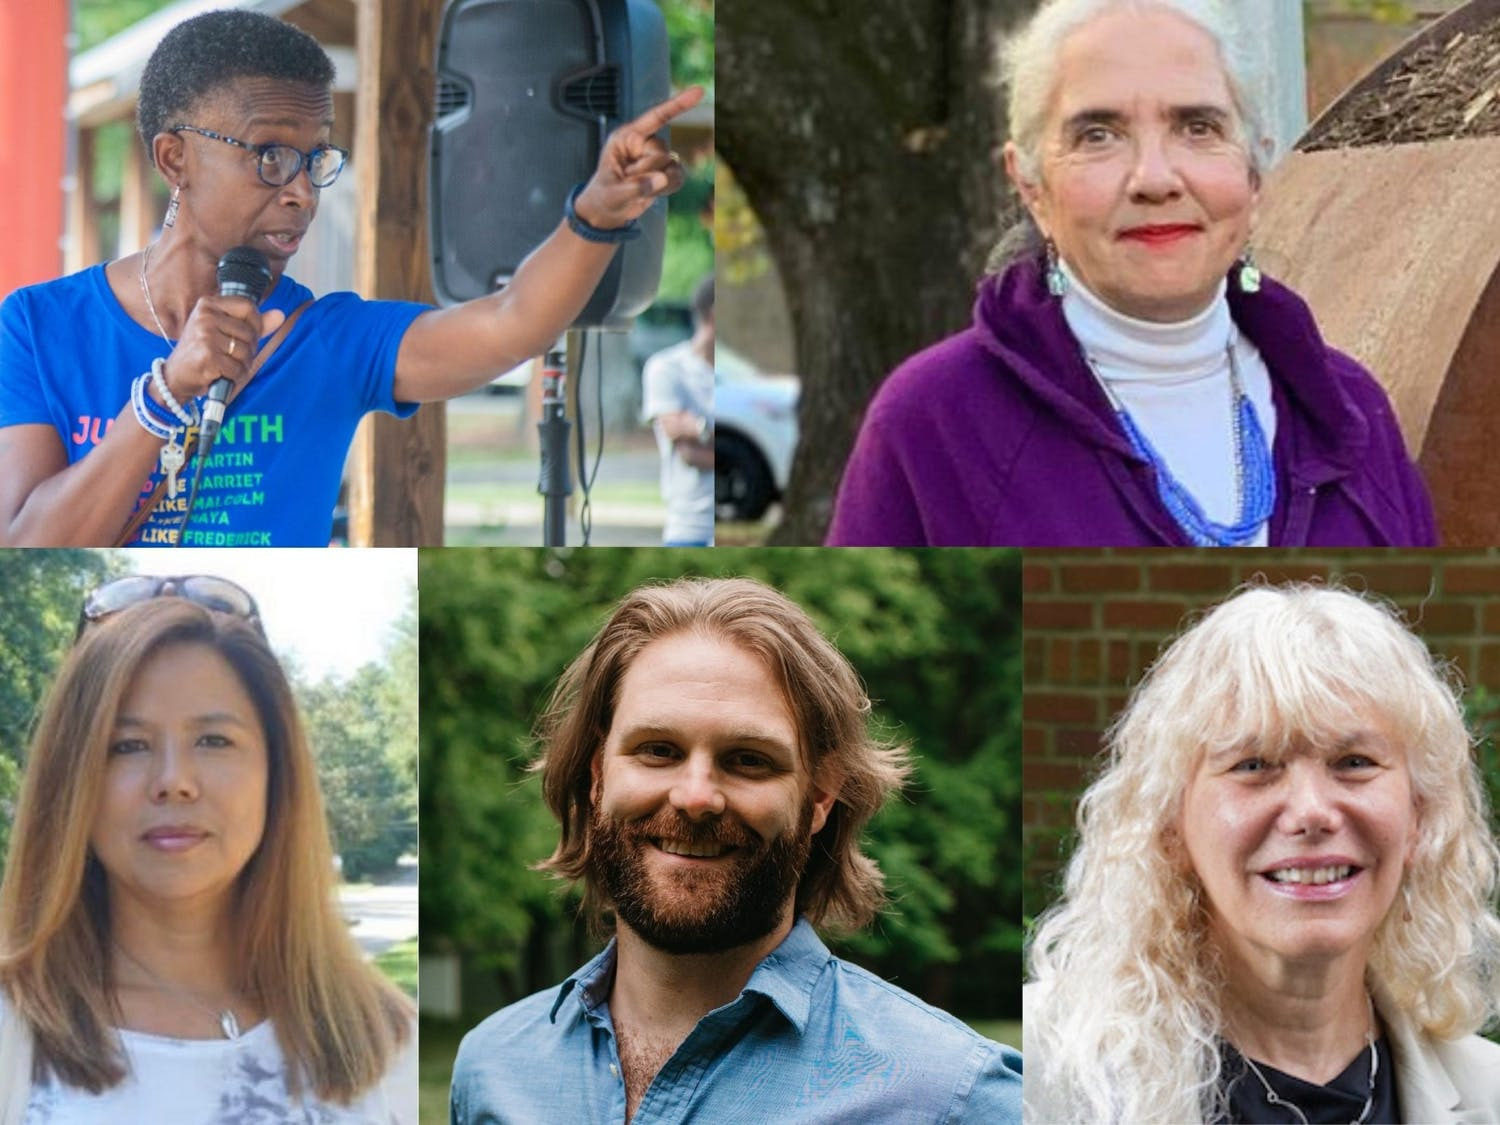 Clockwise from top left: Barbara Foushee, Jacquelyn Gist, Aja Kelleher, Danny Nowell and Randee Haven-O'Donnell are candidates for Carrboro Town Council. Photos by Helen McGinnis and courtesy of Jacquelyn Gist, Aja Kelleher, Danny Nowell and the Town of Carrboro.